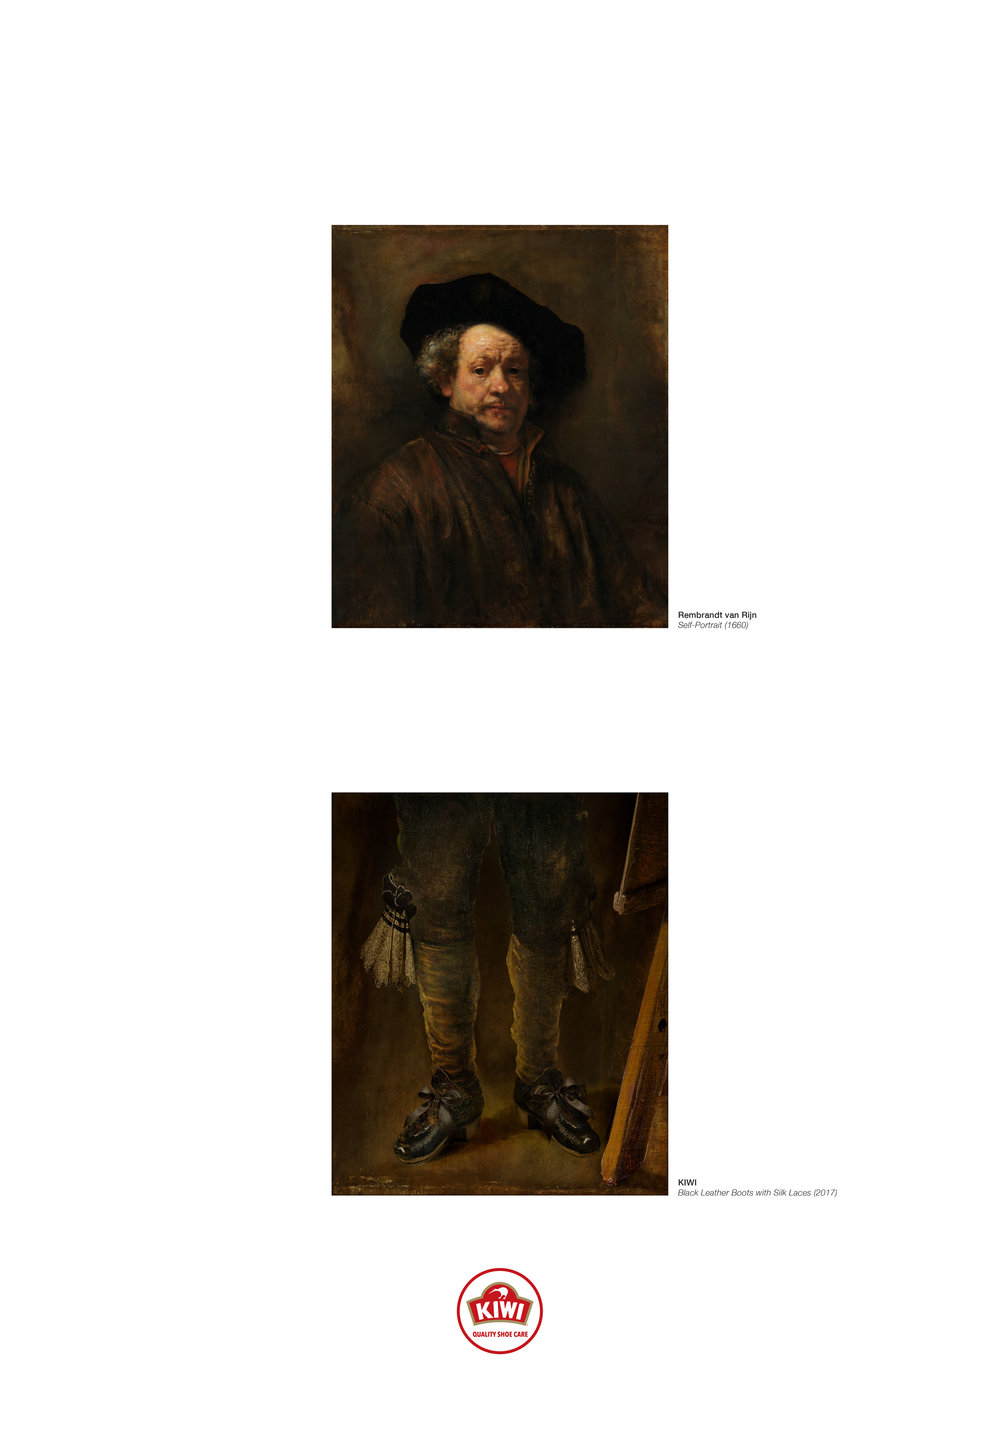 A08 KIWIPORTRAITSCOMPLETED_REMBRANDT.jpg